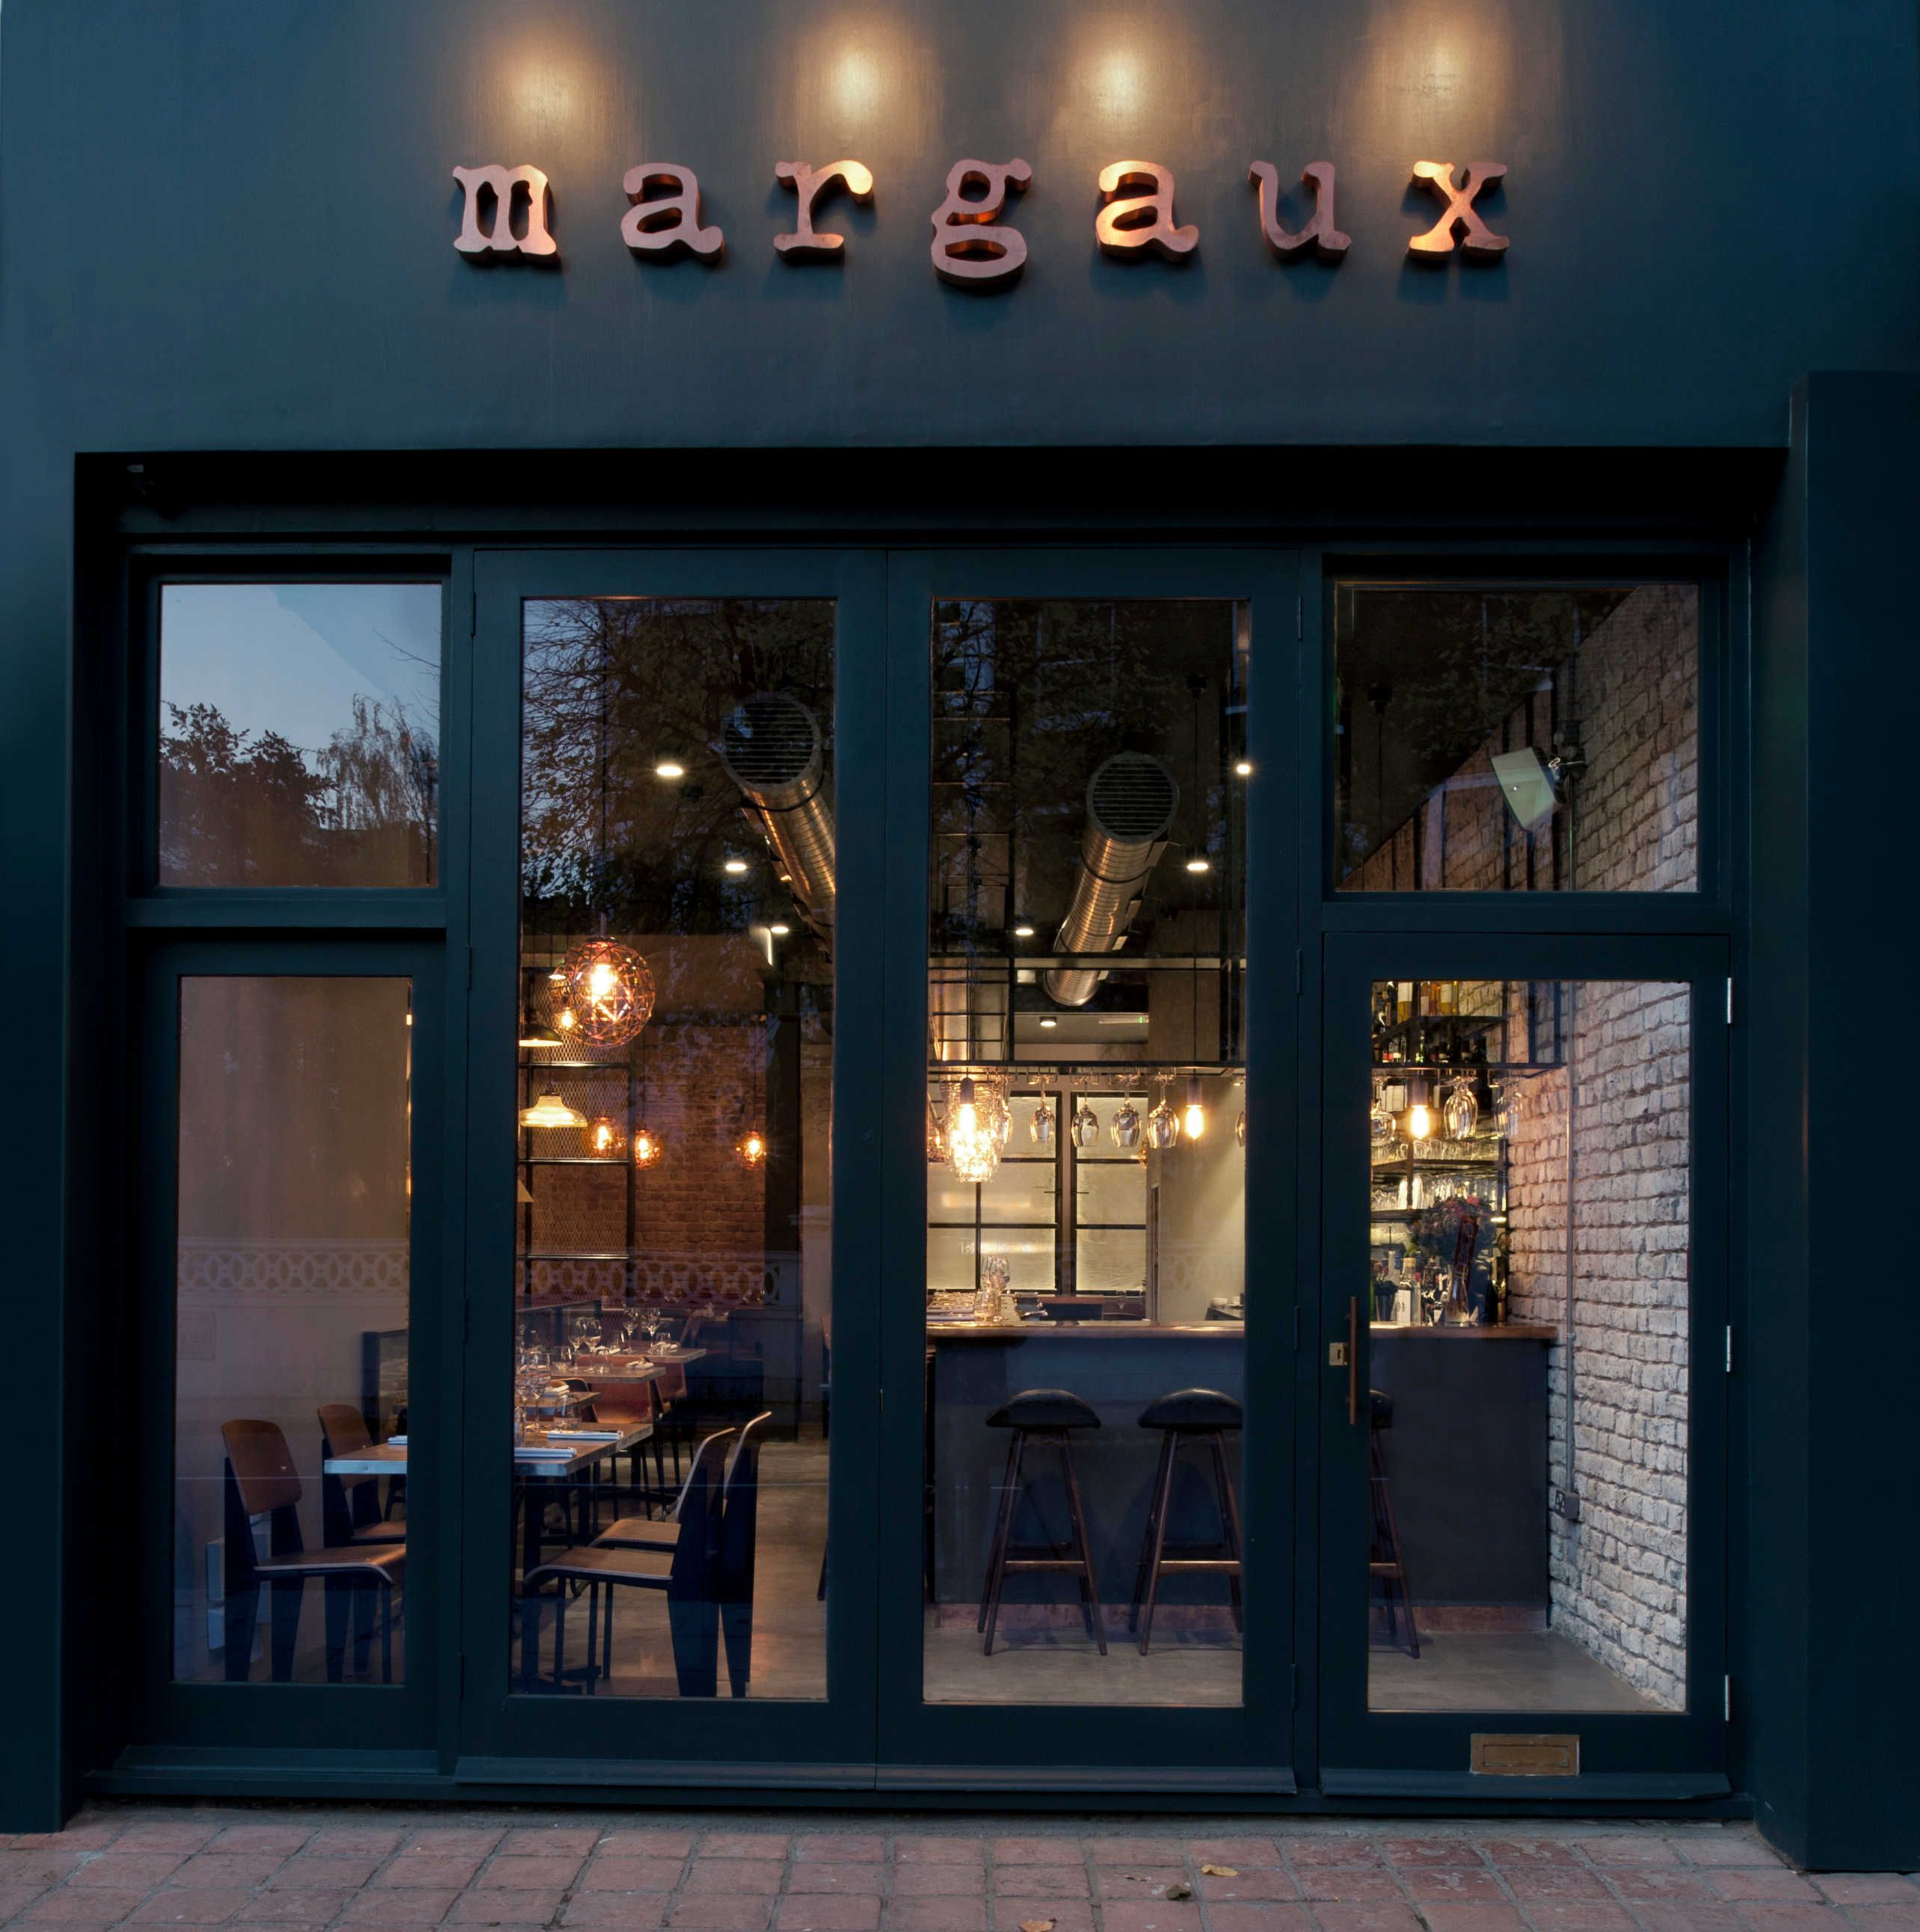 Bar margaux for a treat … pinteres…